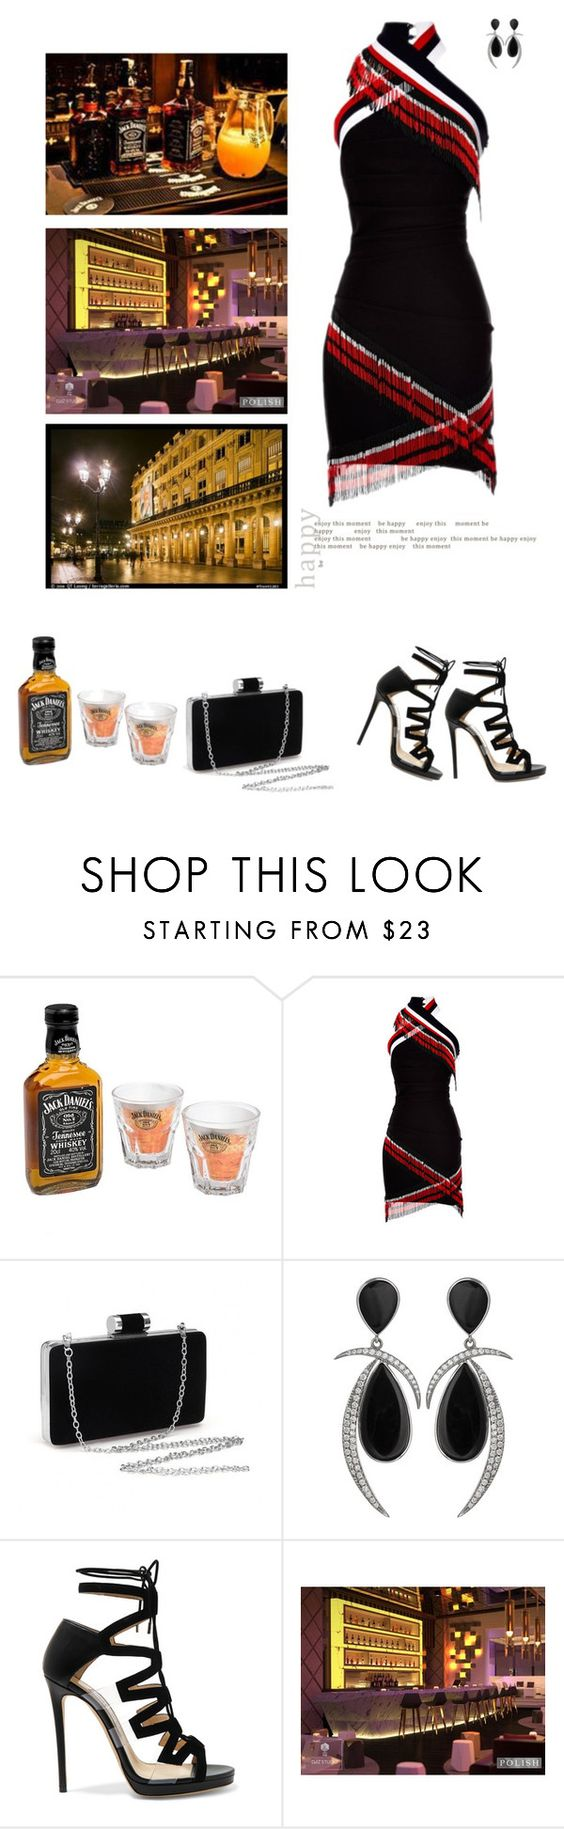 """Untitled #465"" by island ❤ liked on Polyvore featuring Debenhams, Preen, Jorge Adeler and Jimmy Choo"